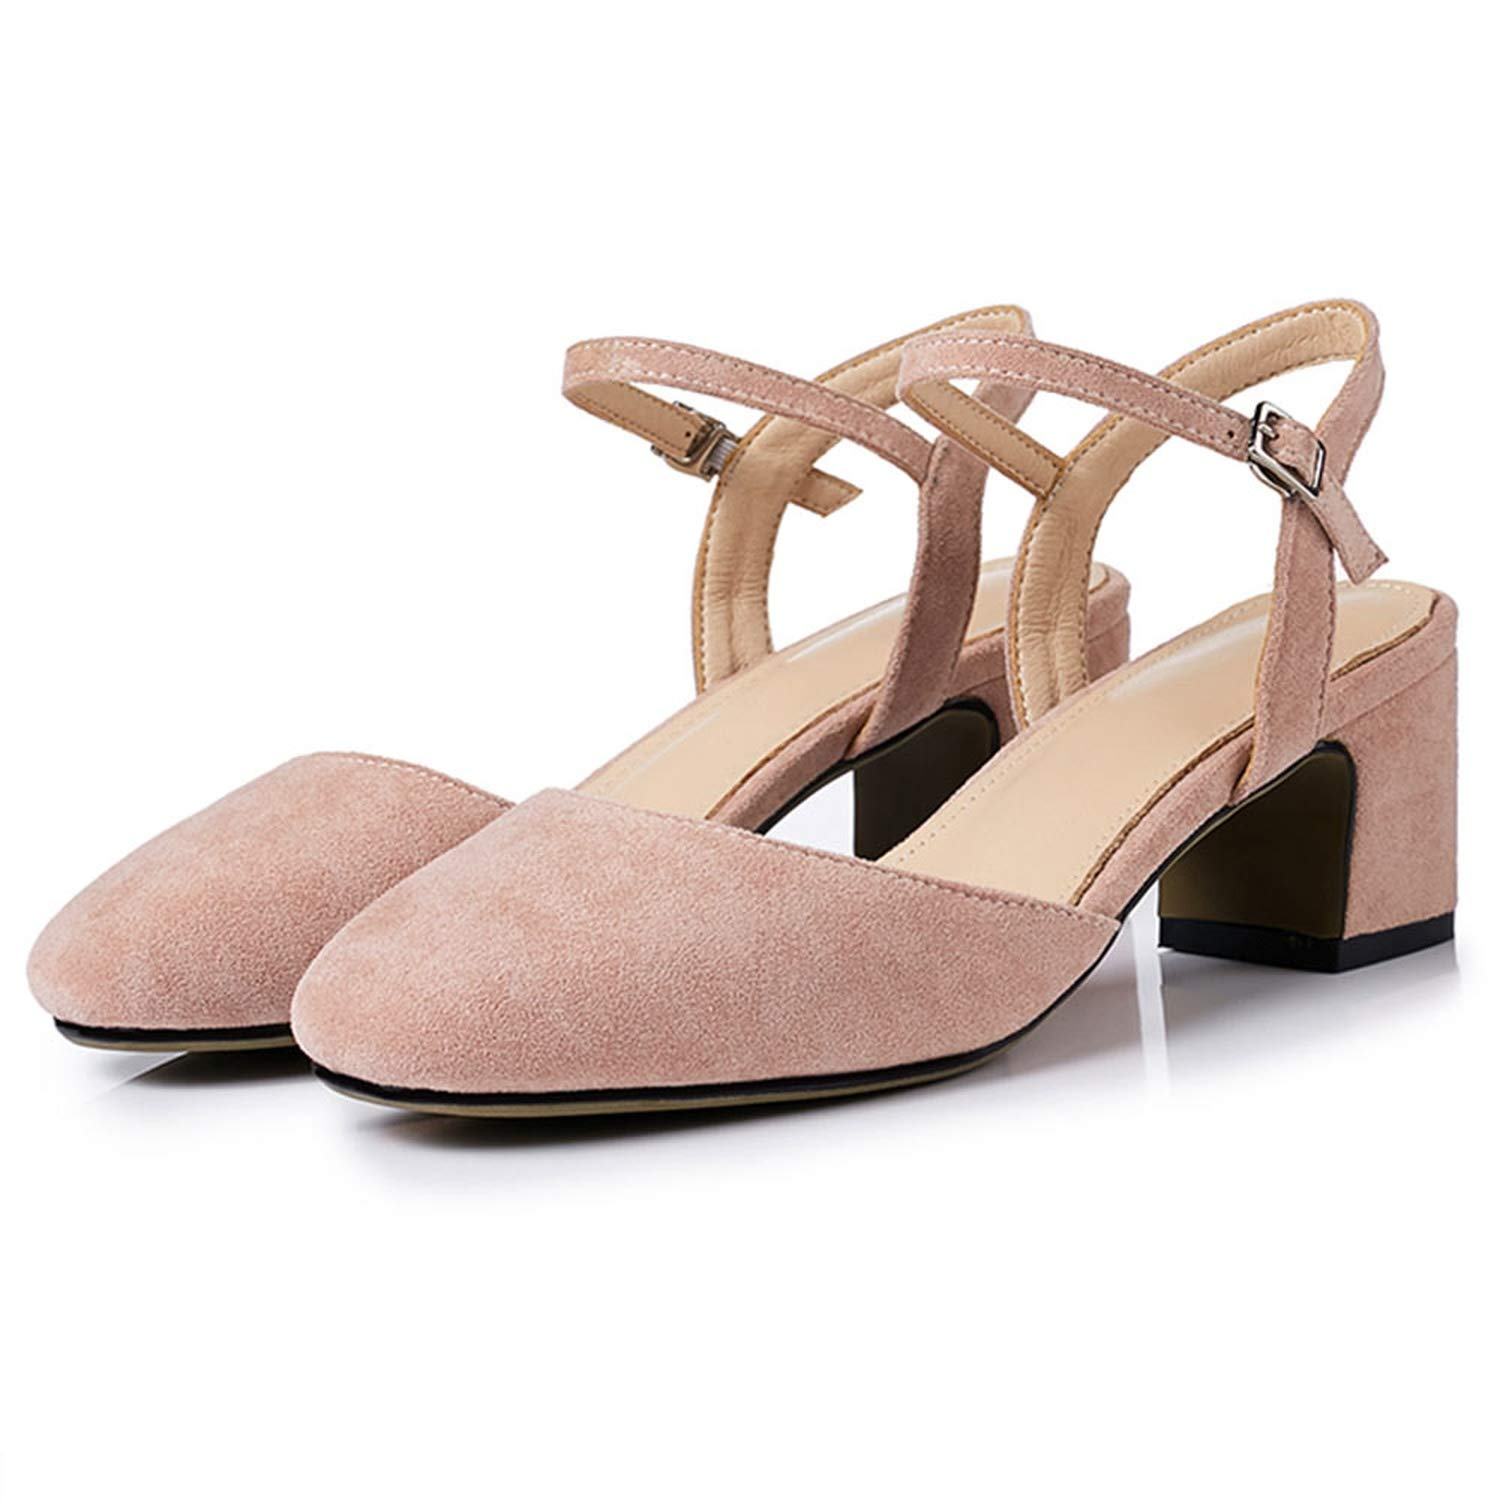 3-203 Lotus Pink shoes Cover Square Toe Sexy Slingback Summer shoes for Women Sandal